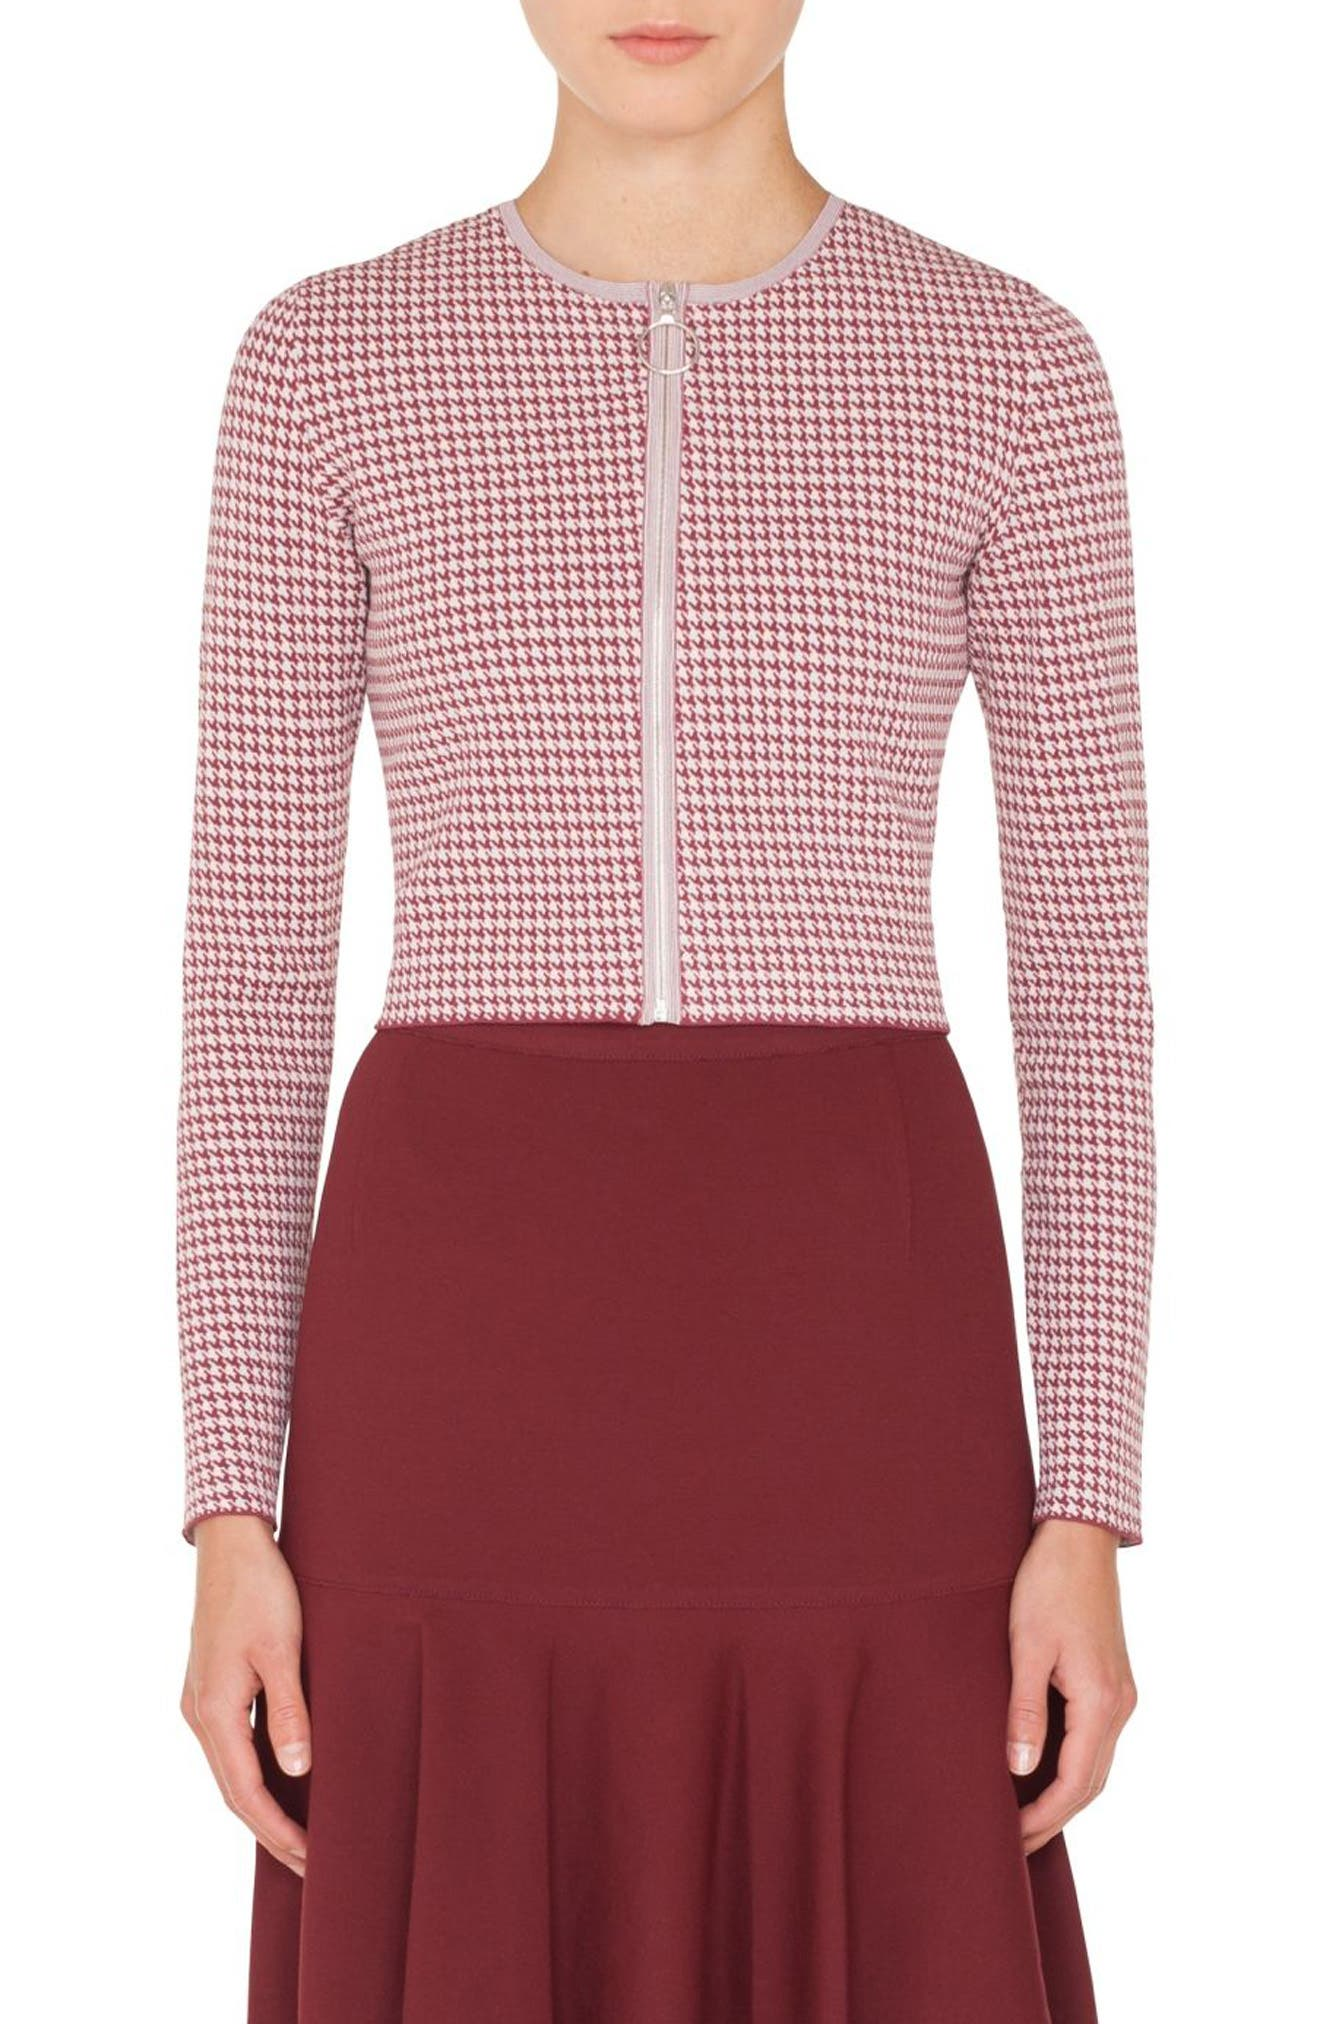 AKRIS PUNTO Zip-Front Houndstooth-Knit Bolero Jacket in Blush Rose/ Burgundy